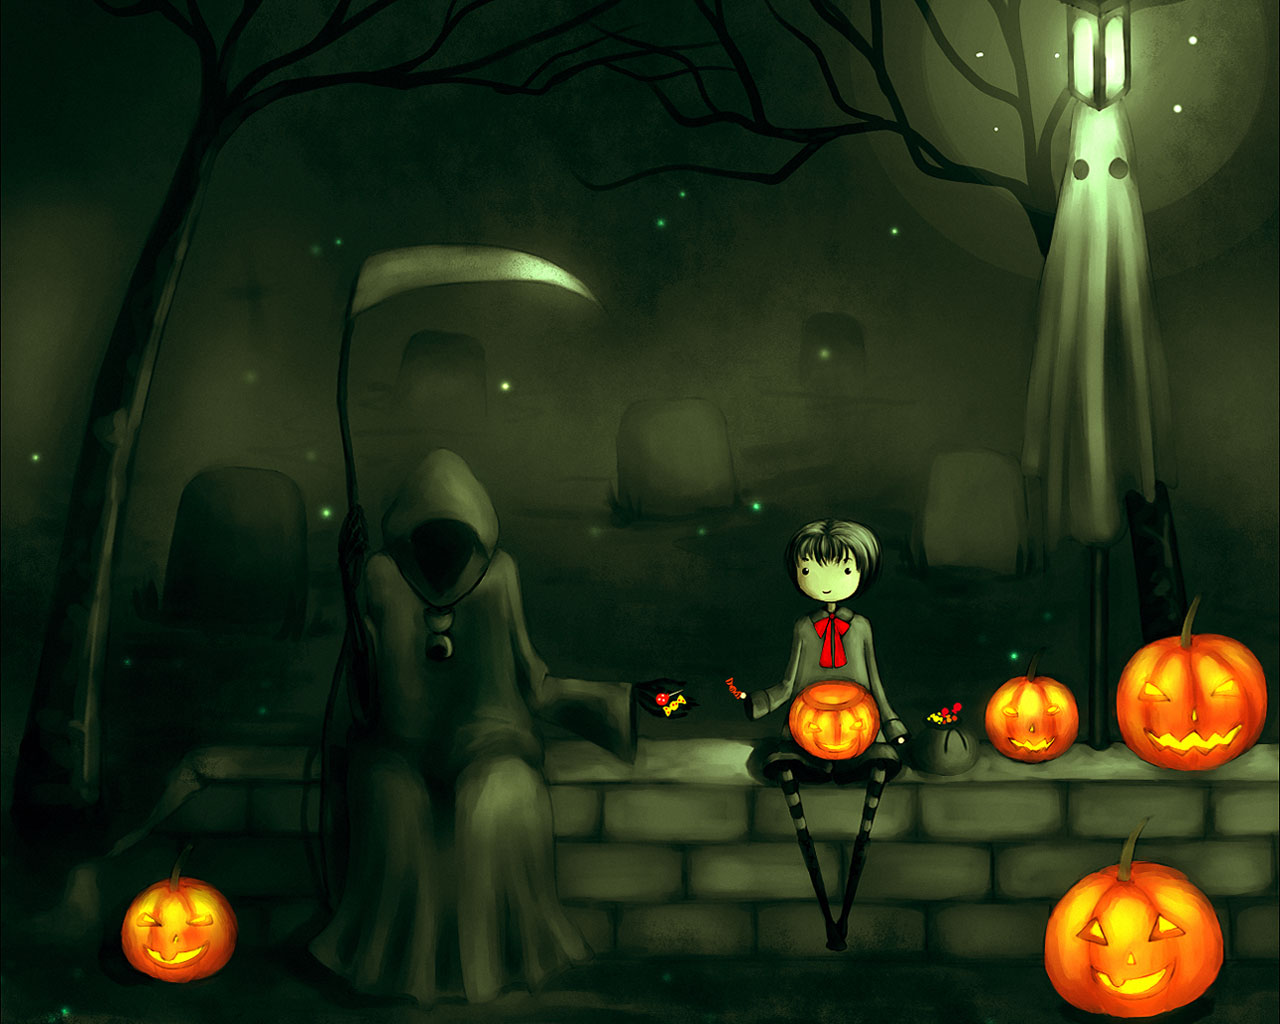 Cute Halloween 2014 Wallpaper. Credit · Cute_halloween_2014_Wallpaper